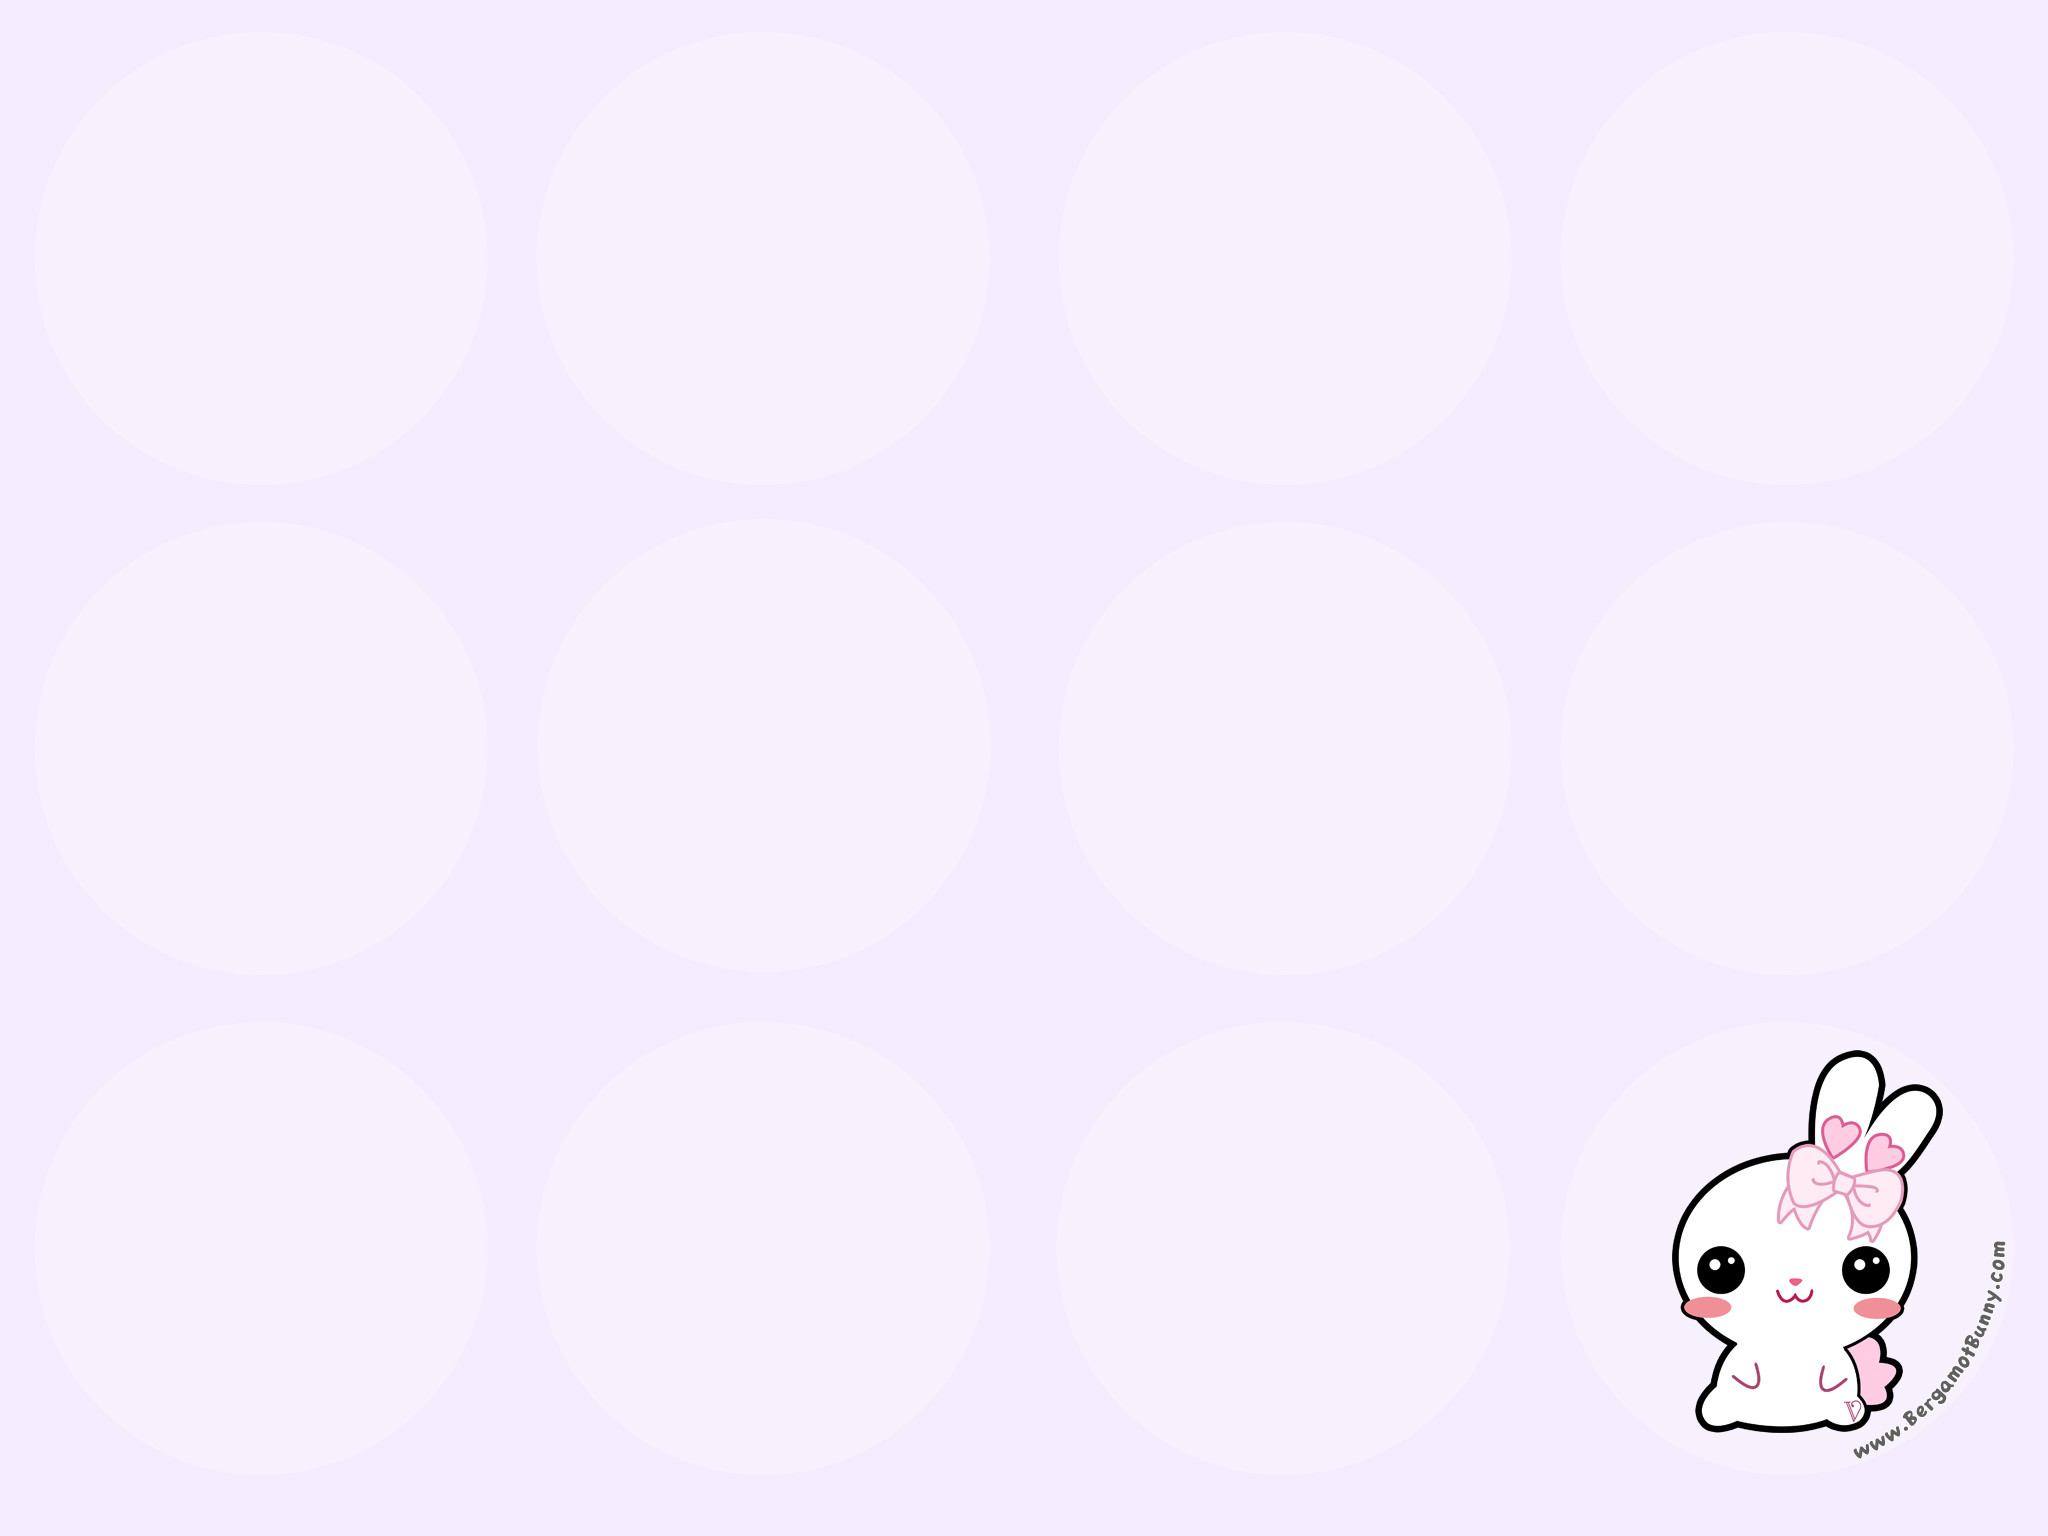 2048x1536 Cute Simple Wallpaper - WallpaperSafari ...